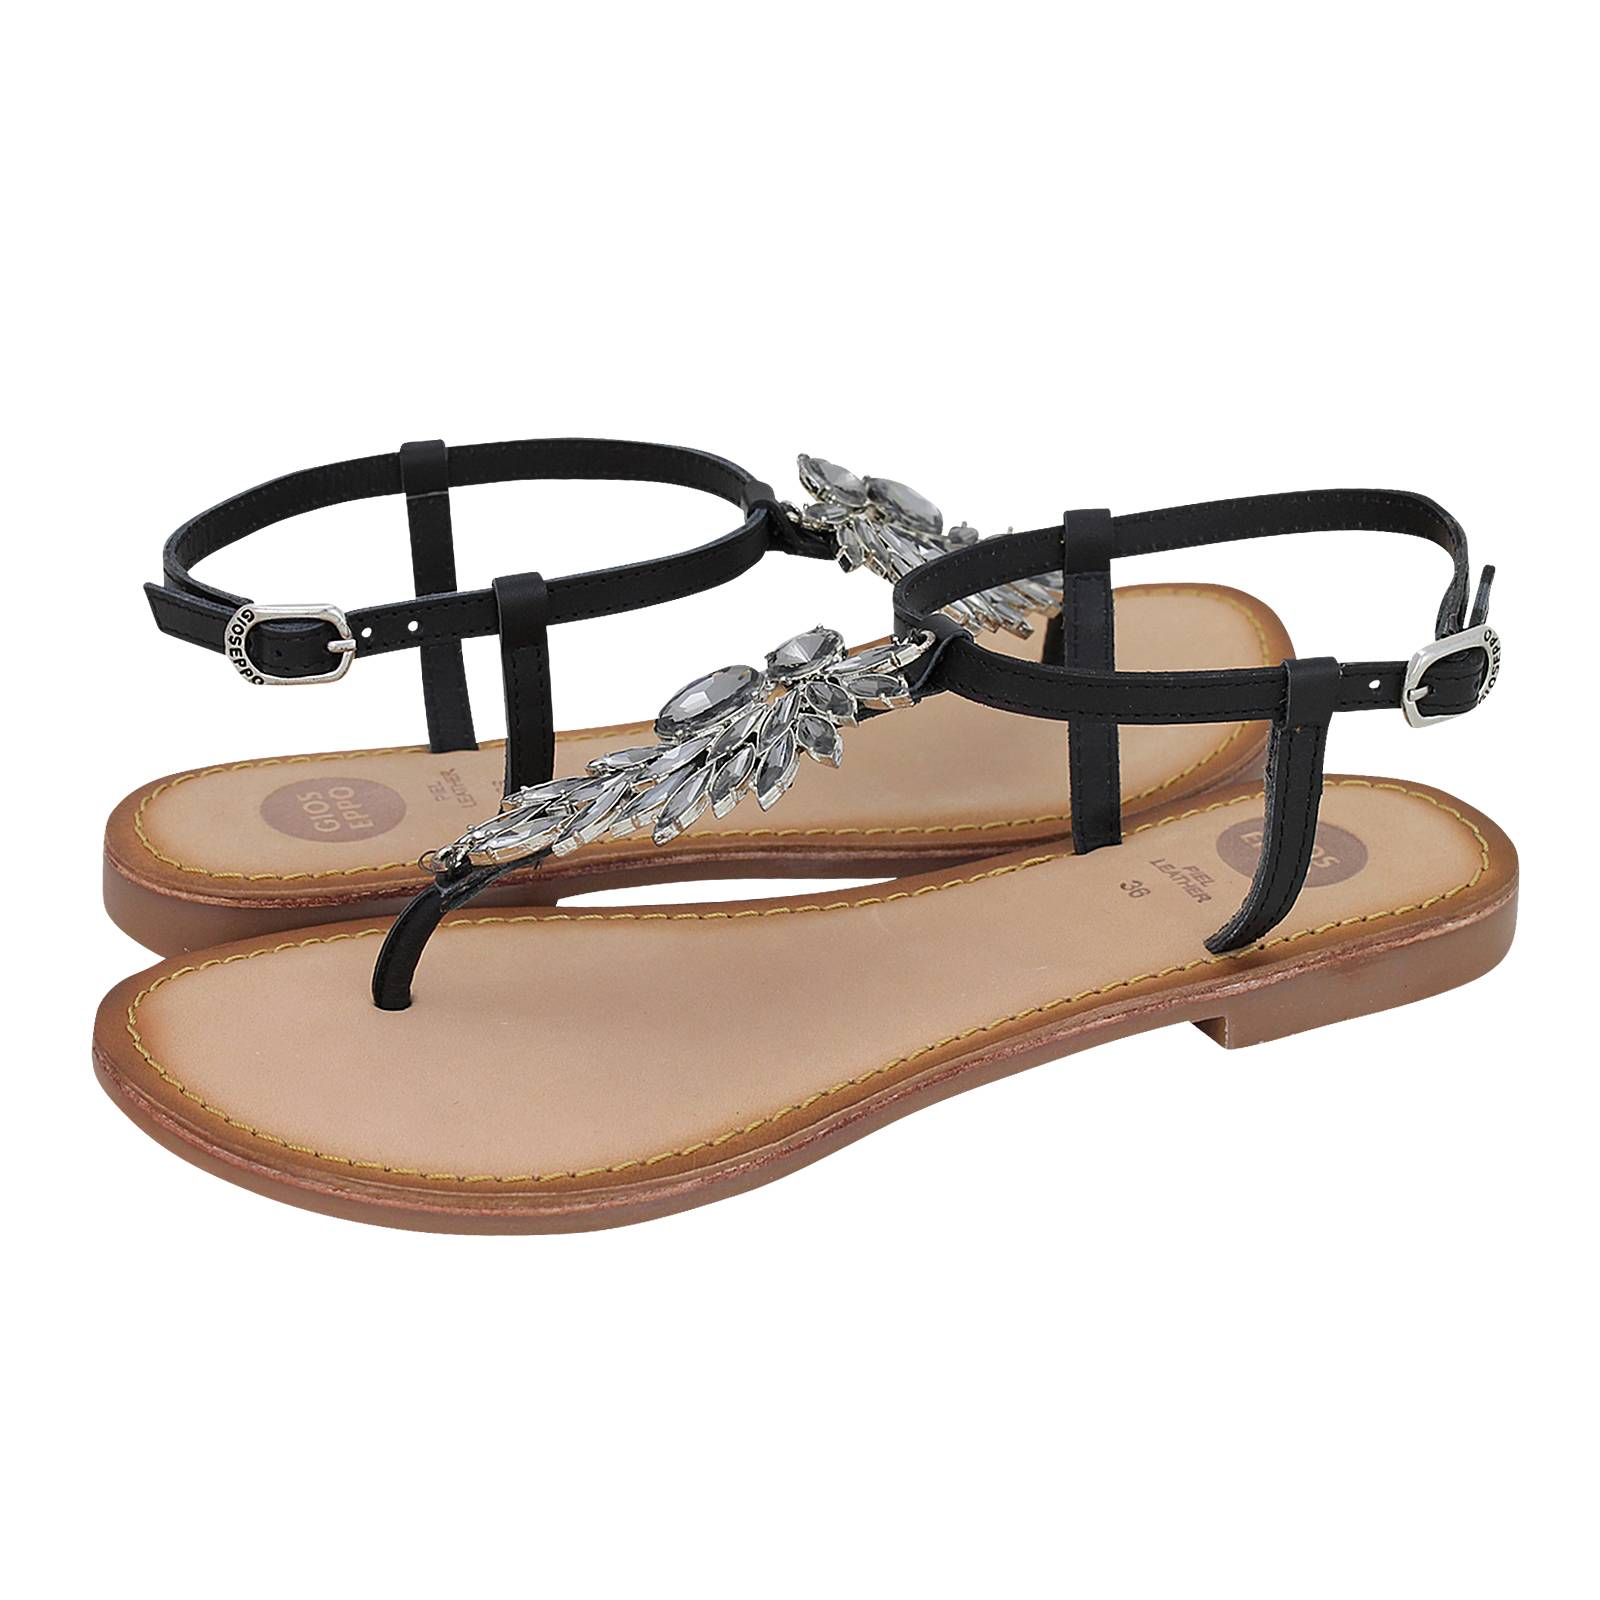 e3335f9b16fecc Nazna - Gioseppo Women s flat sandals made of leather - Gianna ...